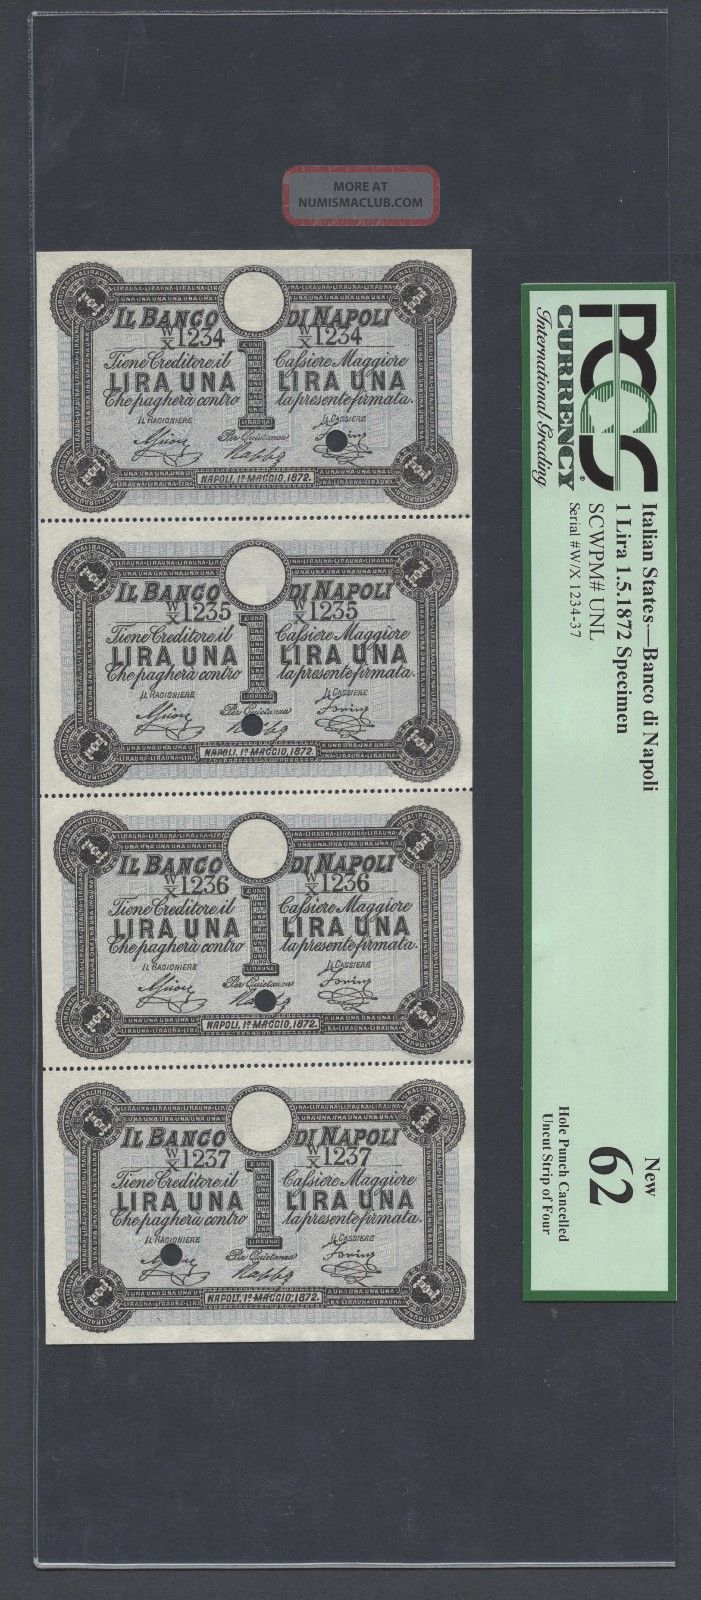 Italy,  Banco Di Napoli 4 Uncut Sheet One Lira 1 - 5 - 1872 Pick Unlisted Specimen Unc Europe photo